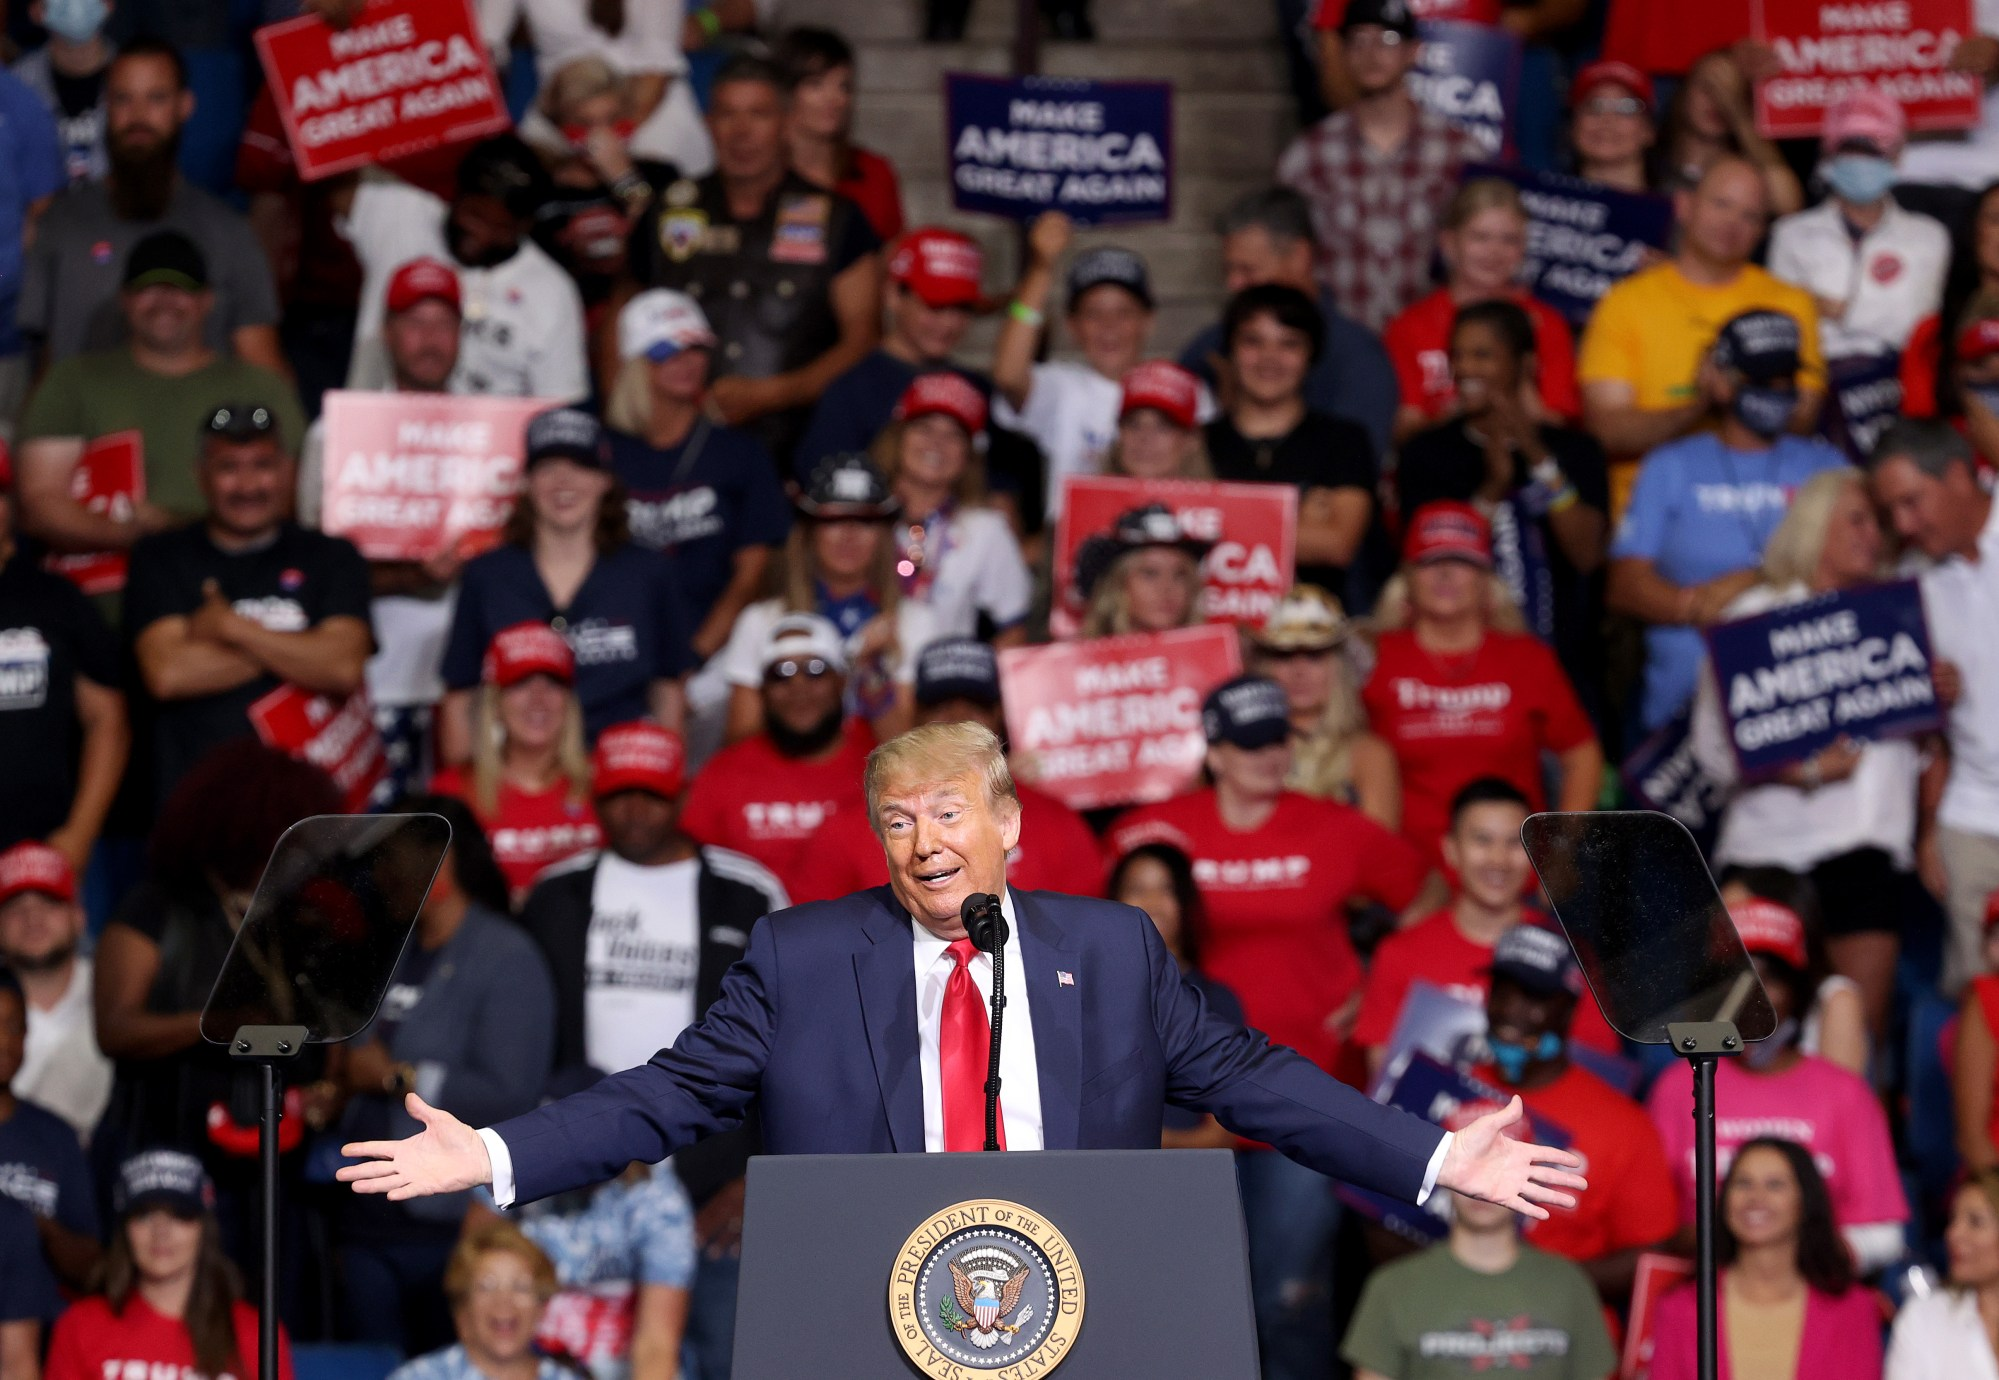 U.S. President Donald Trump speaks at a campaign rally at the BOK Center, June 20, 2020, in Tulsa, Oklahoma. (Win McNamee/Getty Images)